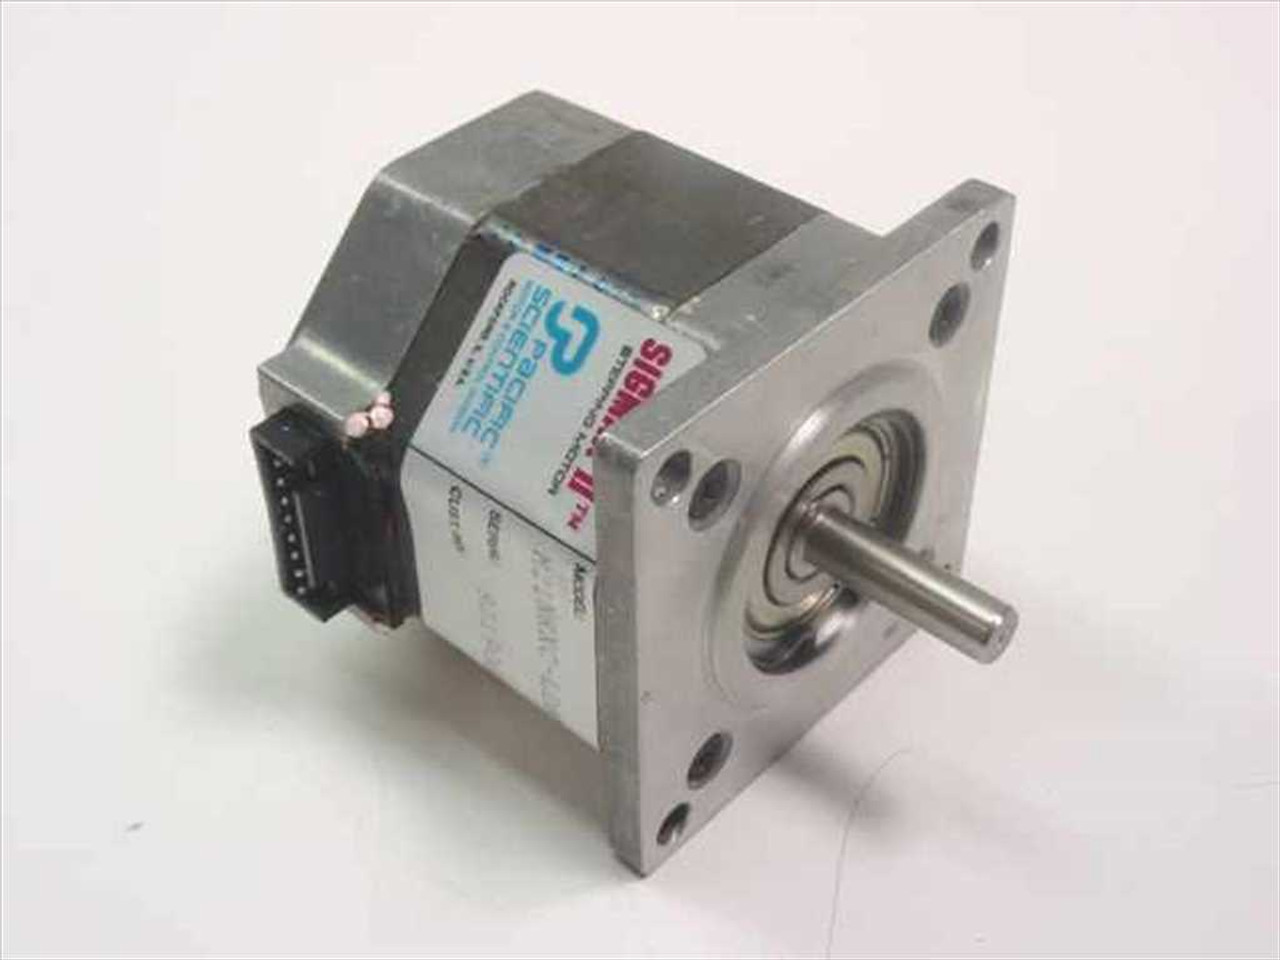 Pacific Scientific Motor Control Division M21nrxc Ldn Ns 00 Sigmax Ii Stepping Motor